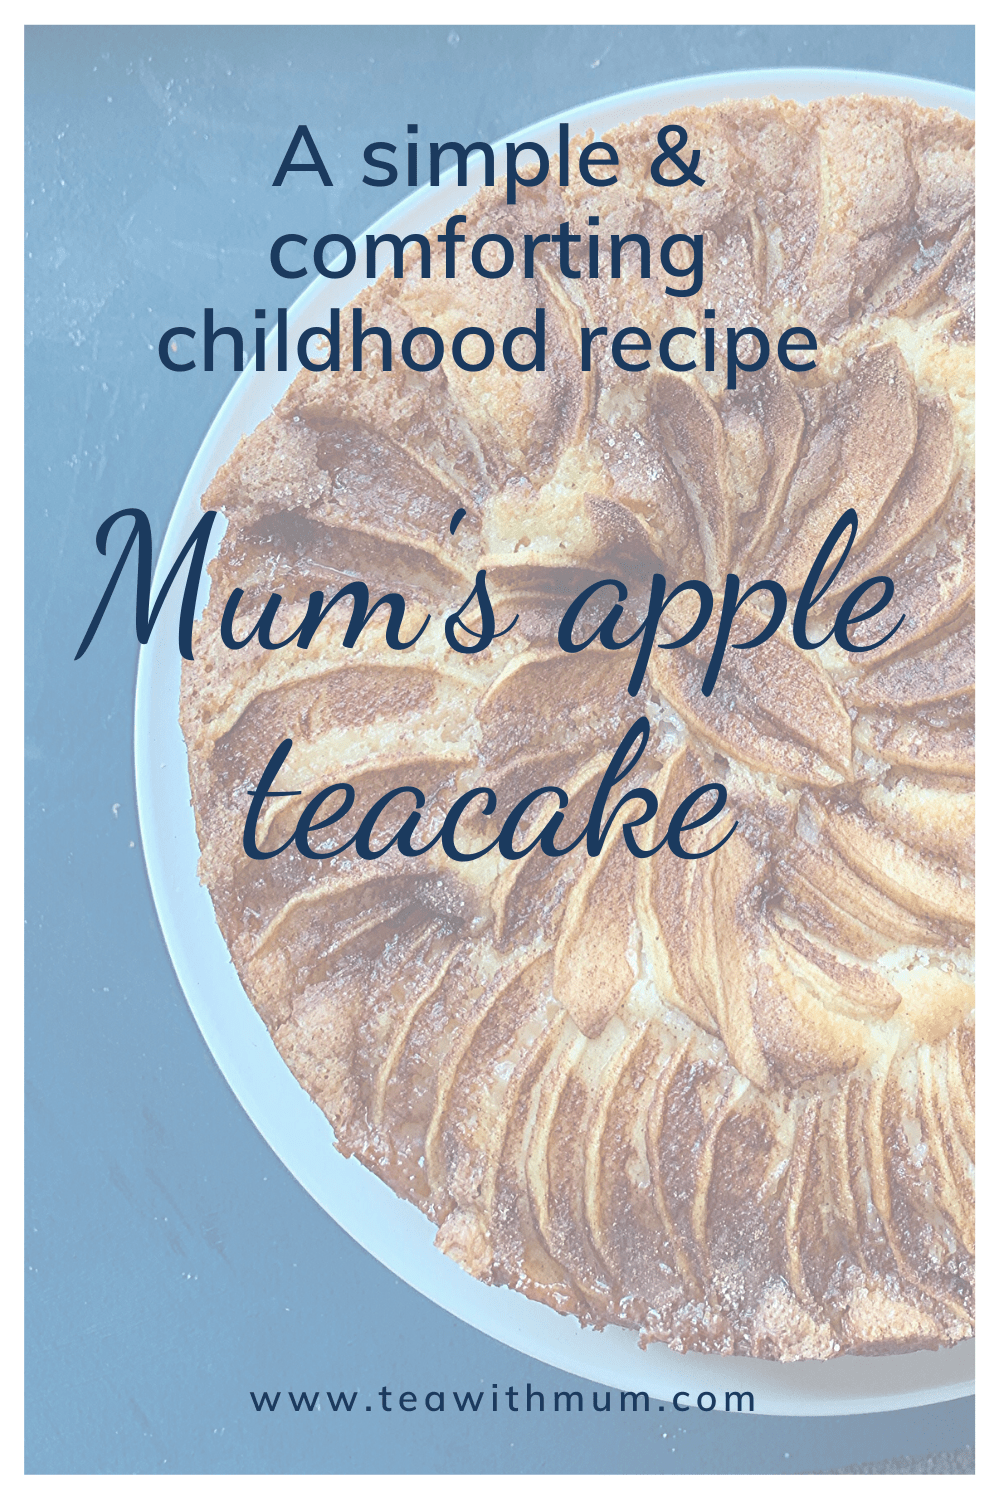 A simple & comforting childhood recipe: Mum's apple teacake: with photo of teacake from above on blue background